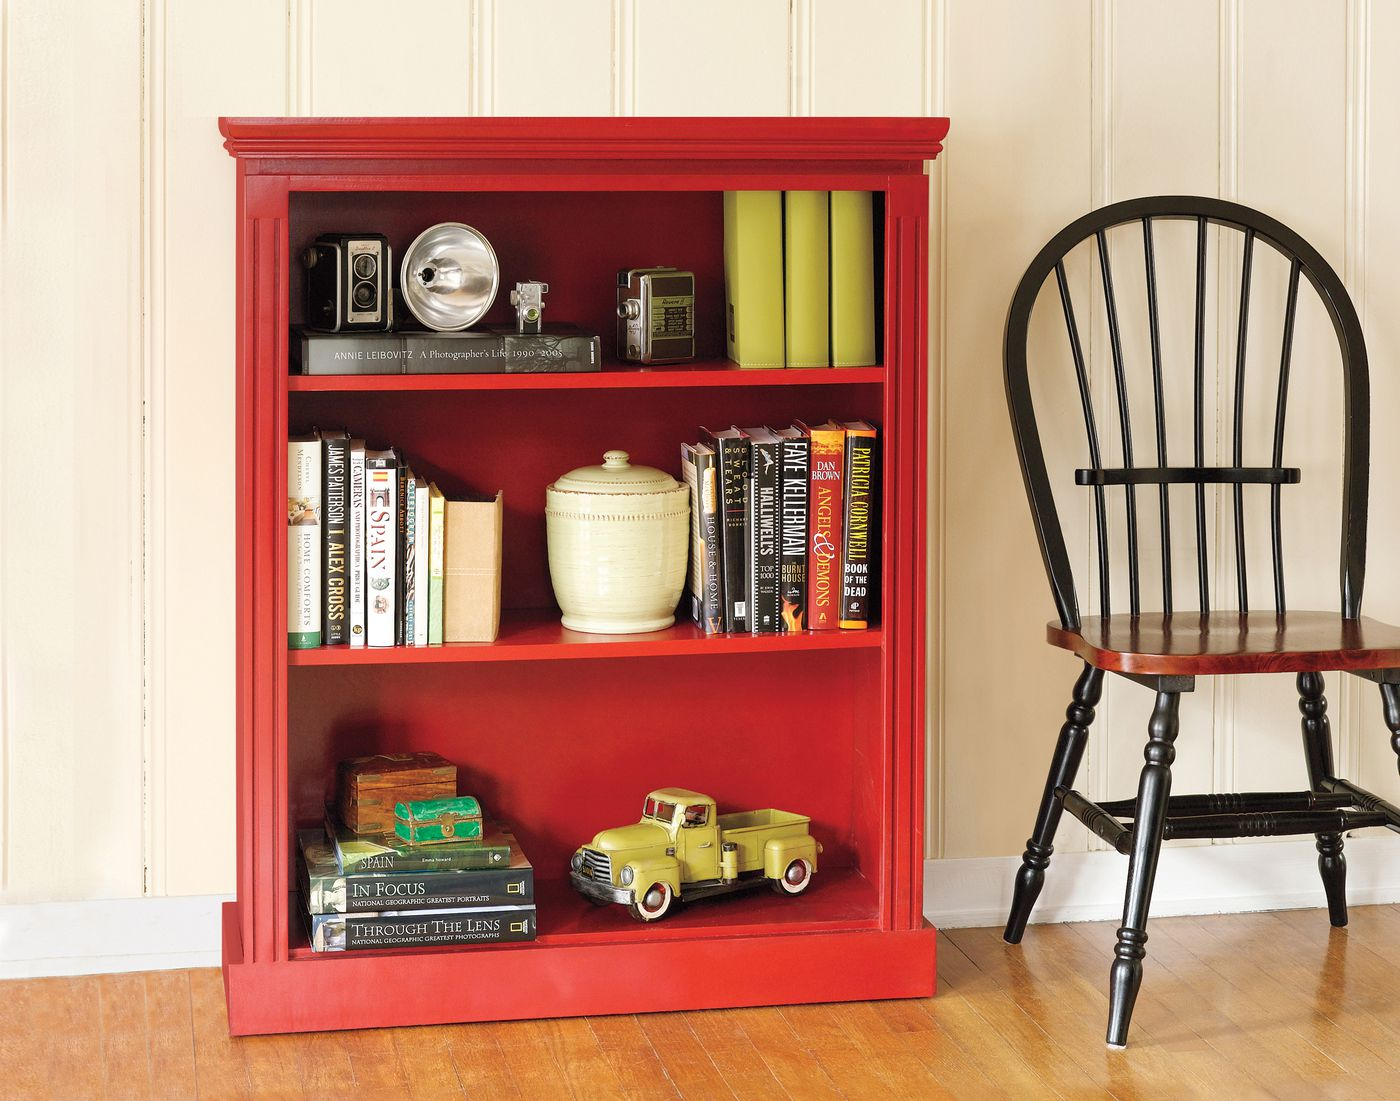 27 Ways To Build Your Own Bedroom Furniture This Old House,What A Beautiful Name Lyrics Hillsong Worship